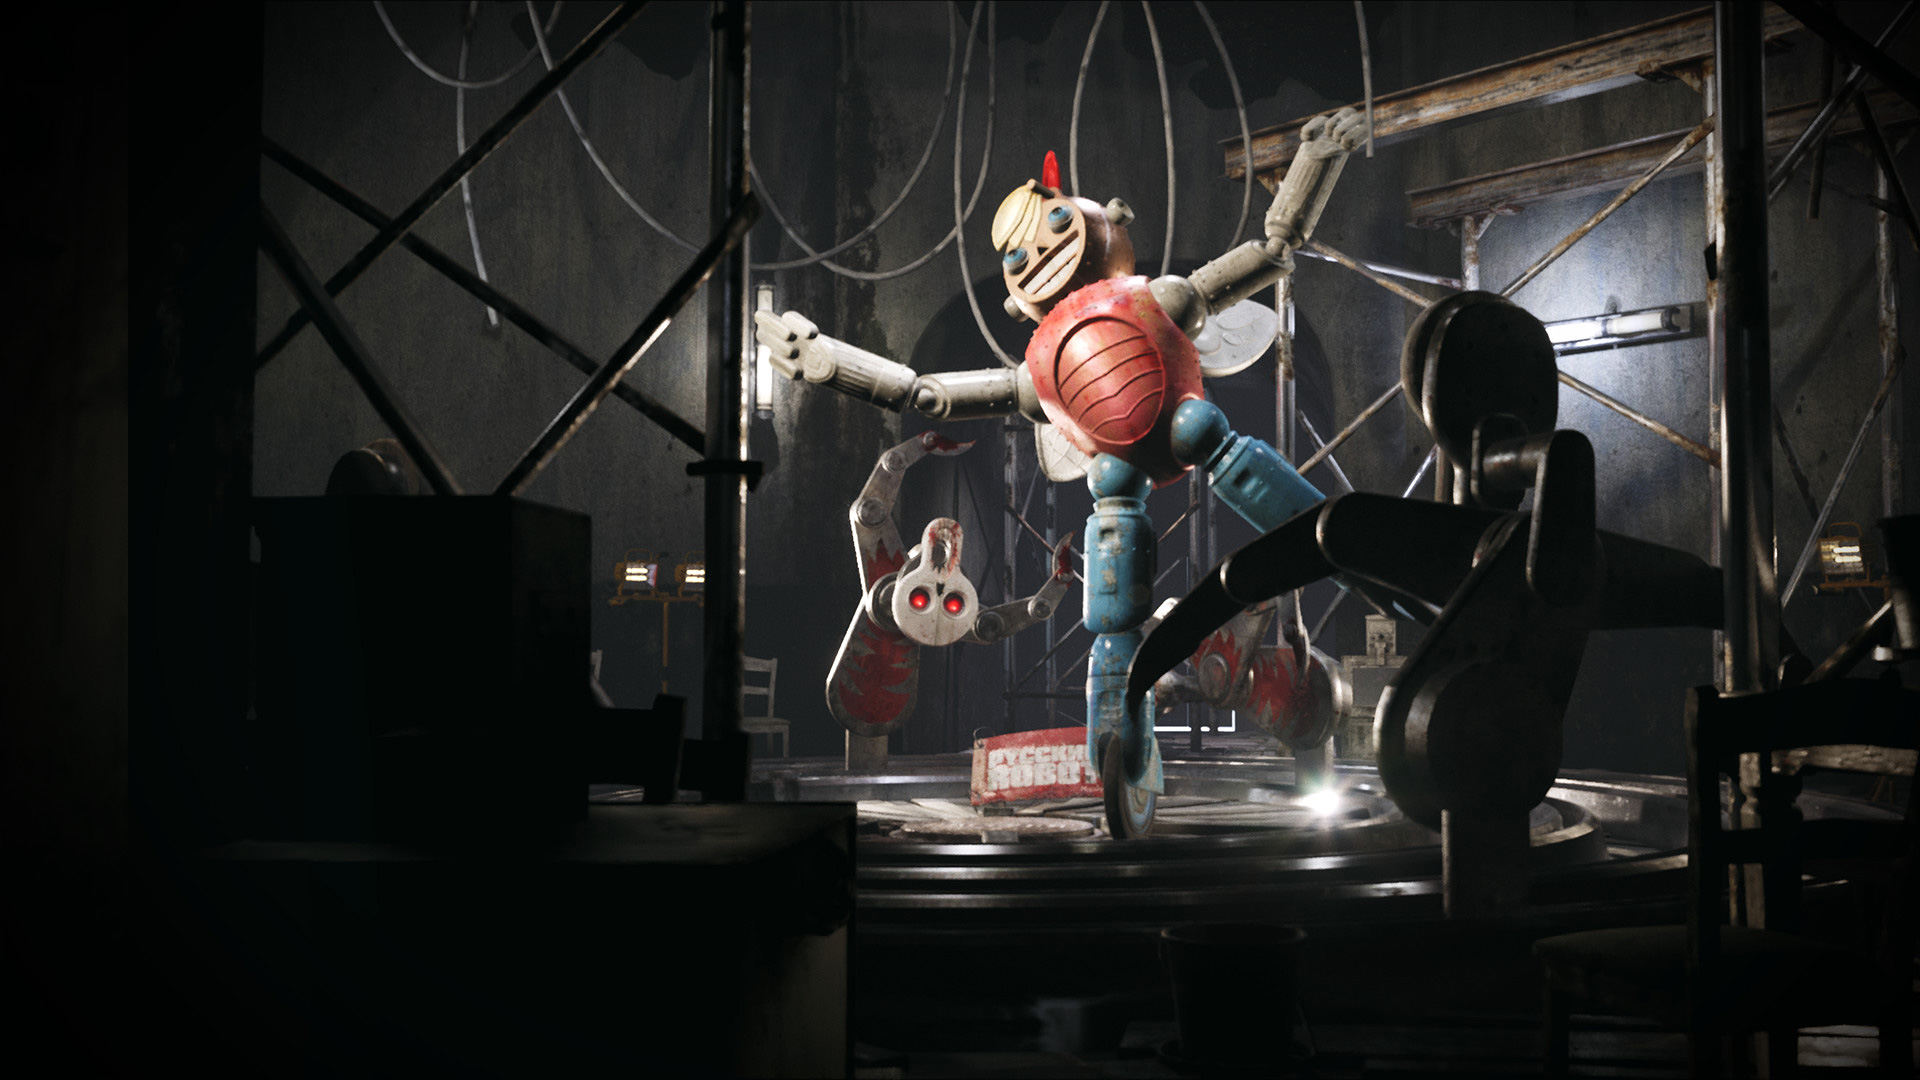 Atomic Heart has one highly unsettling clown screenshot